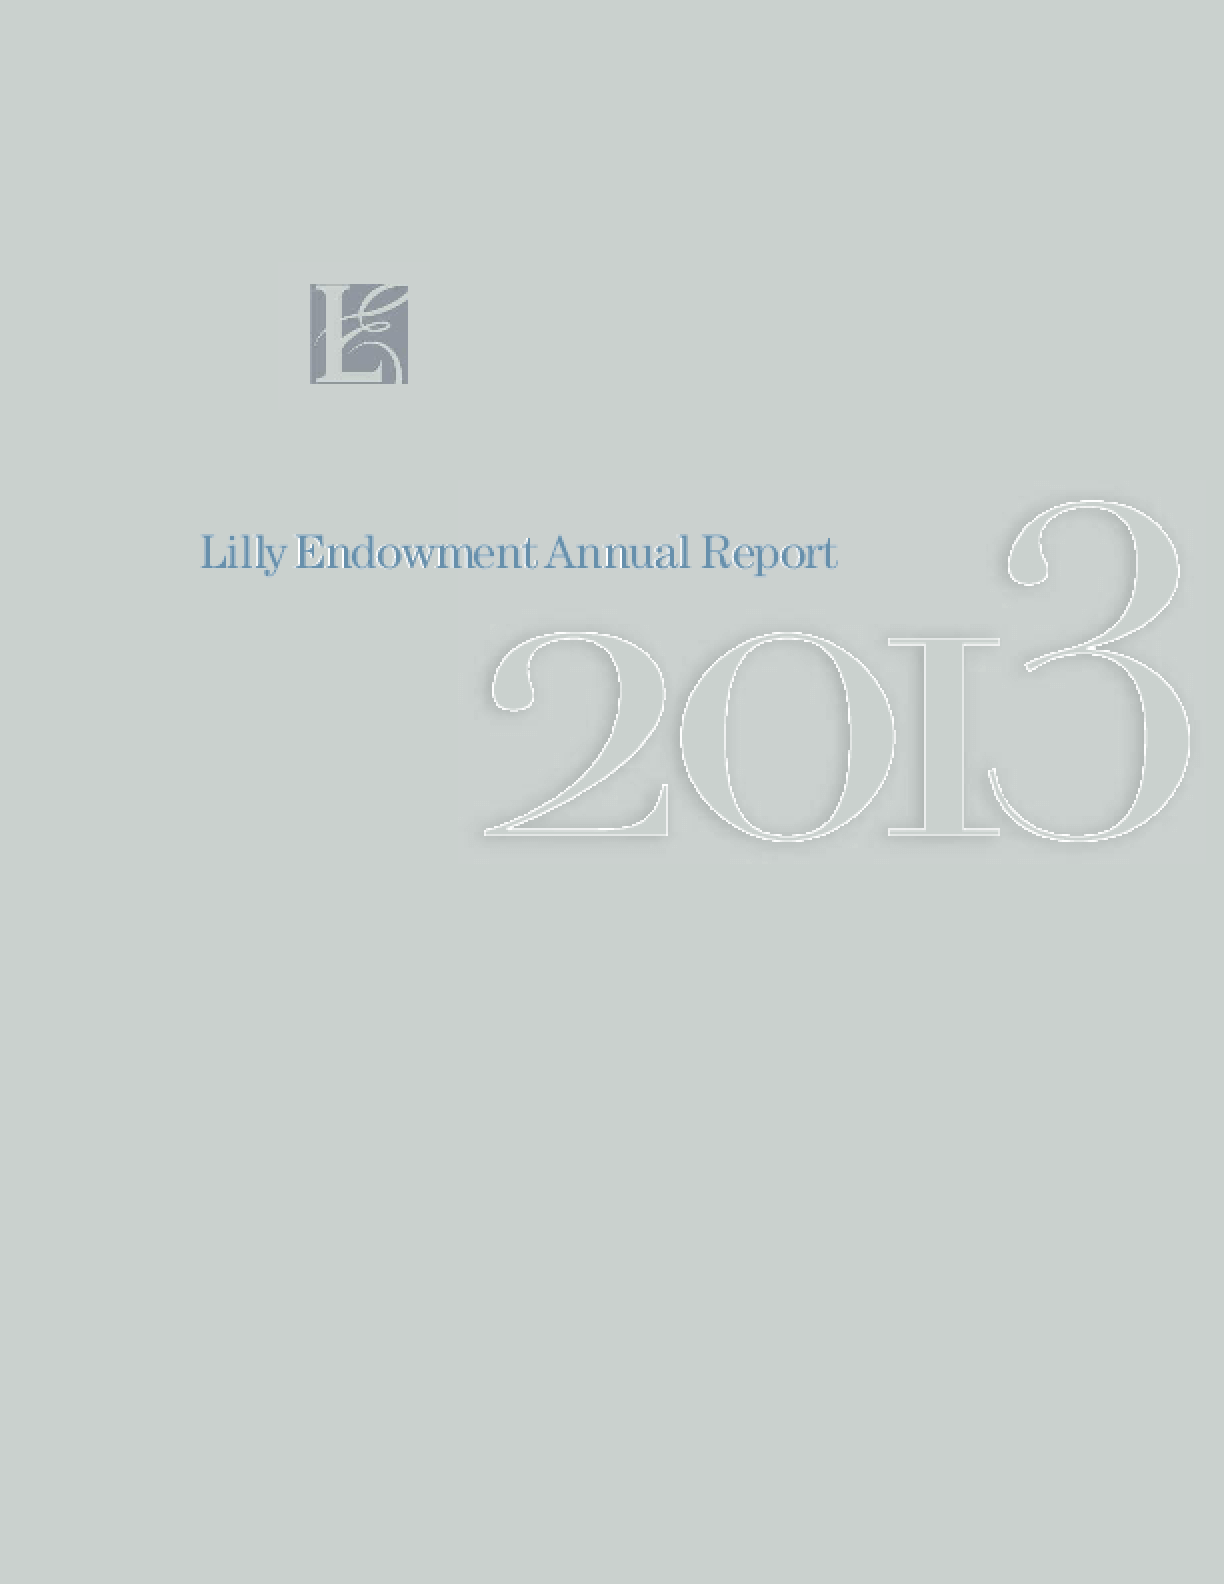 Lilly Endowment Annual Report 2013